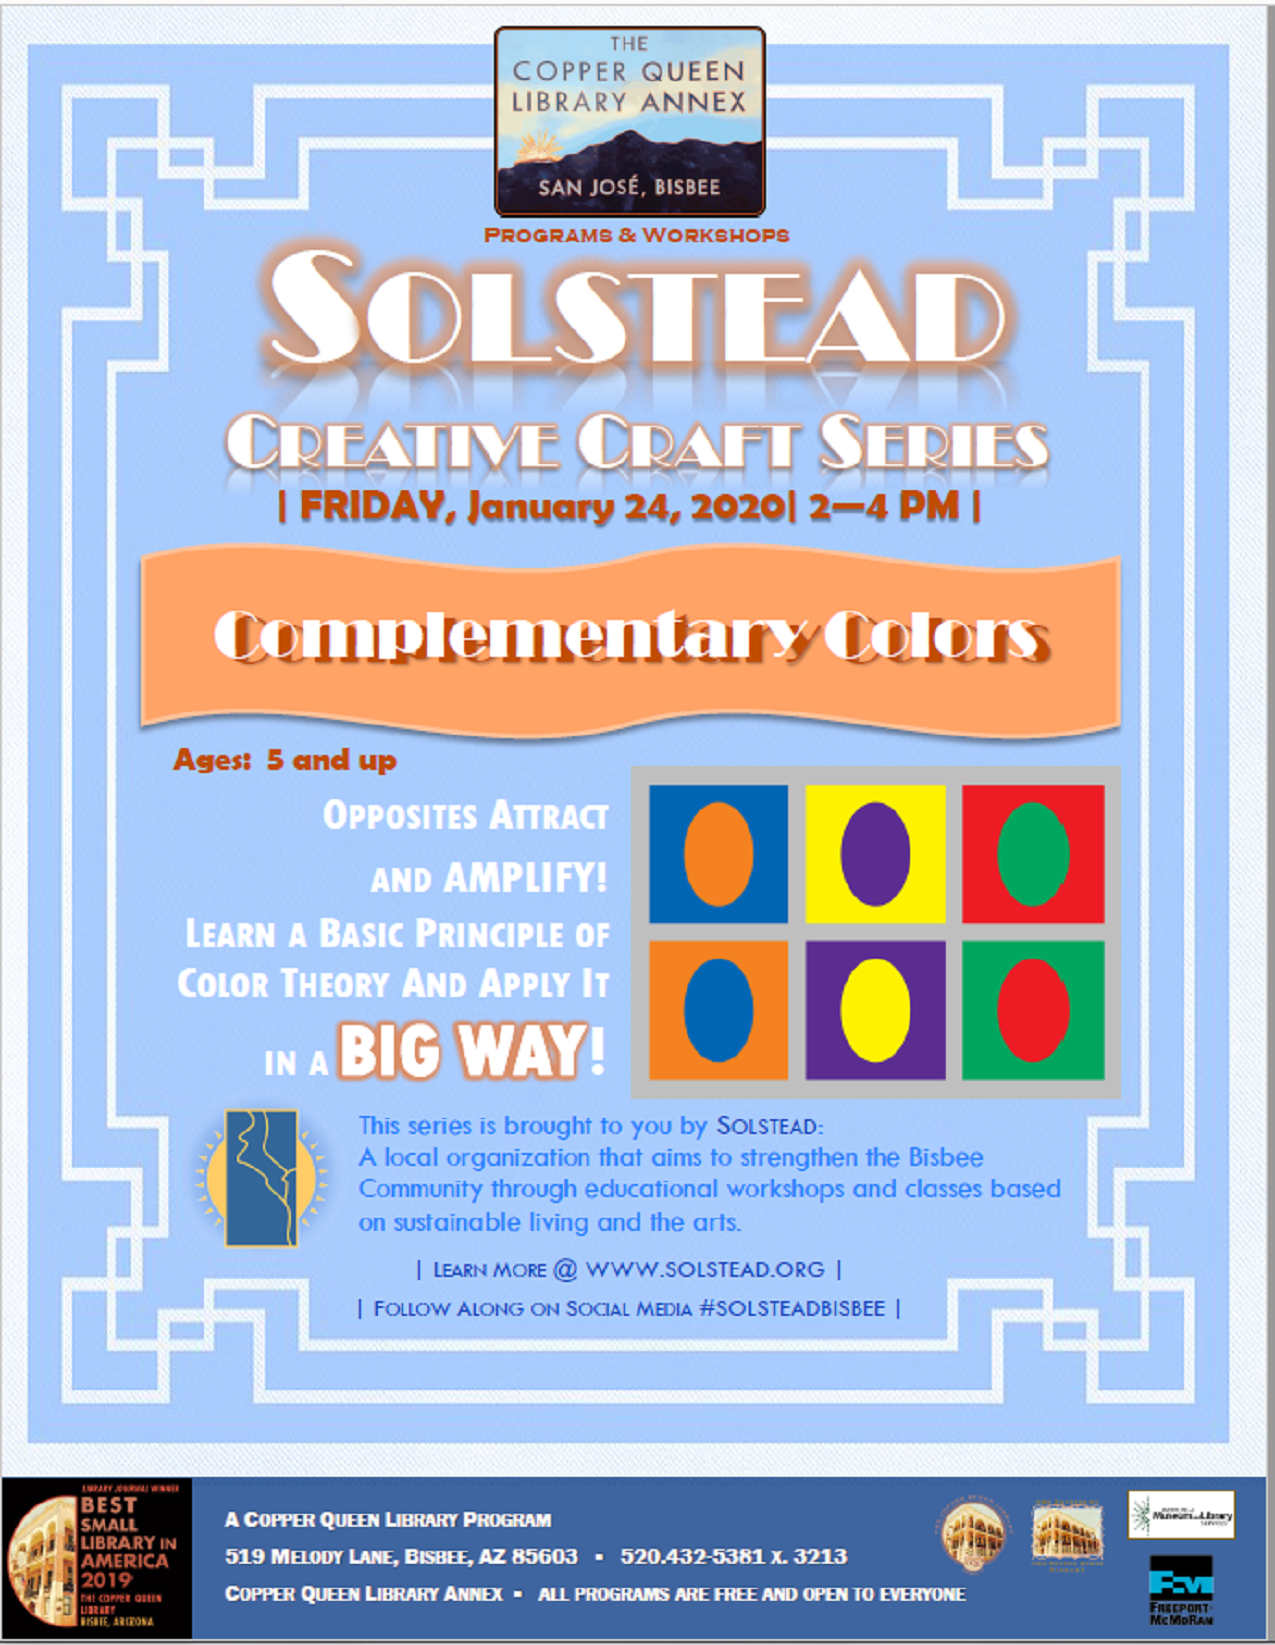 Solstead Compementary Colors